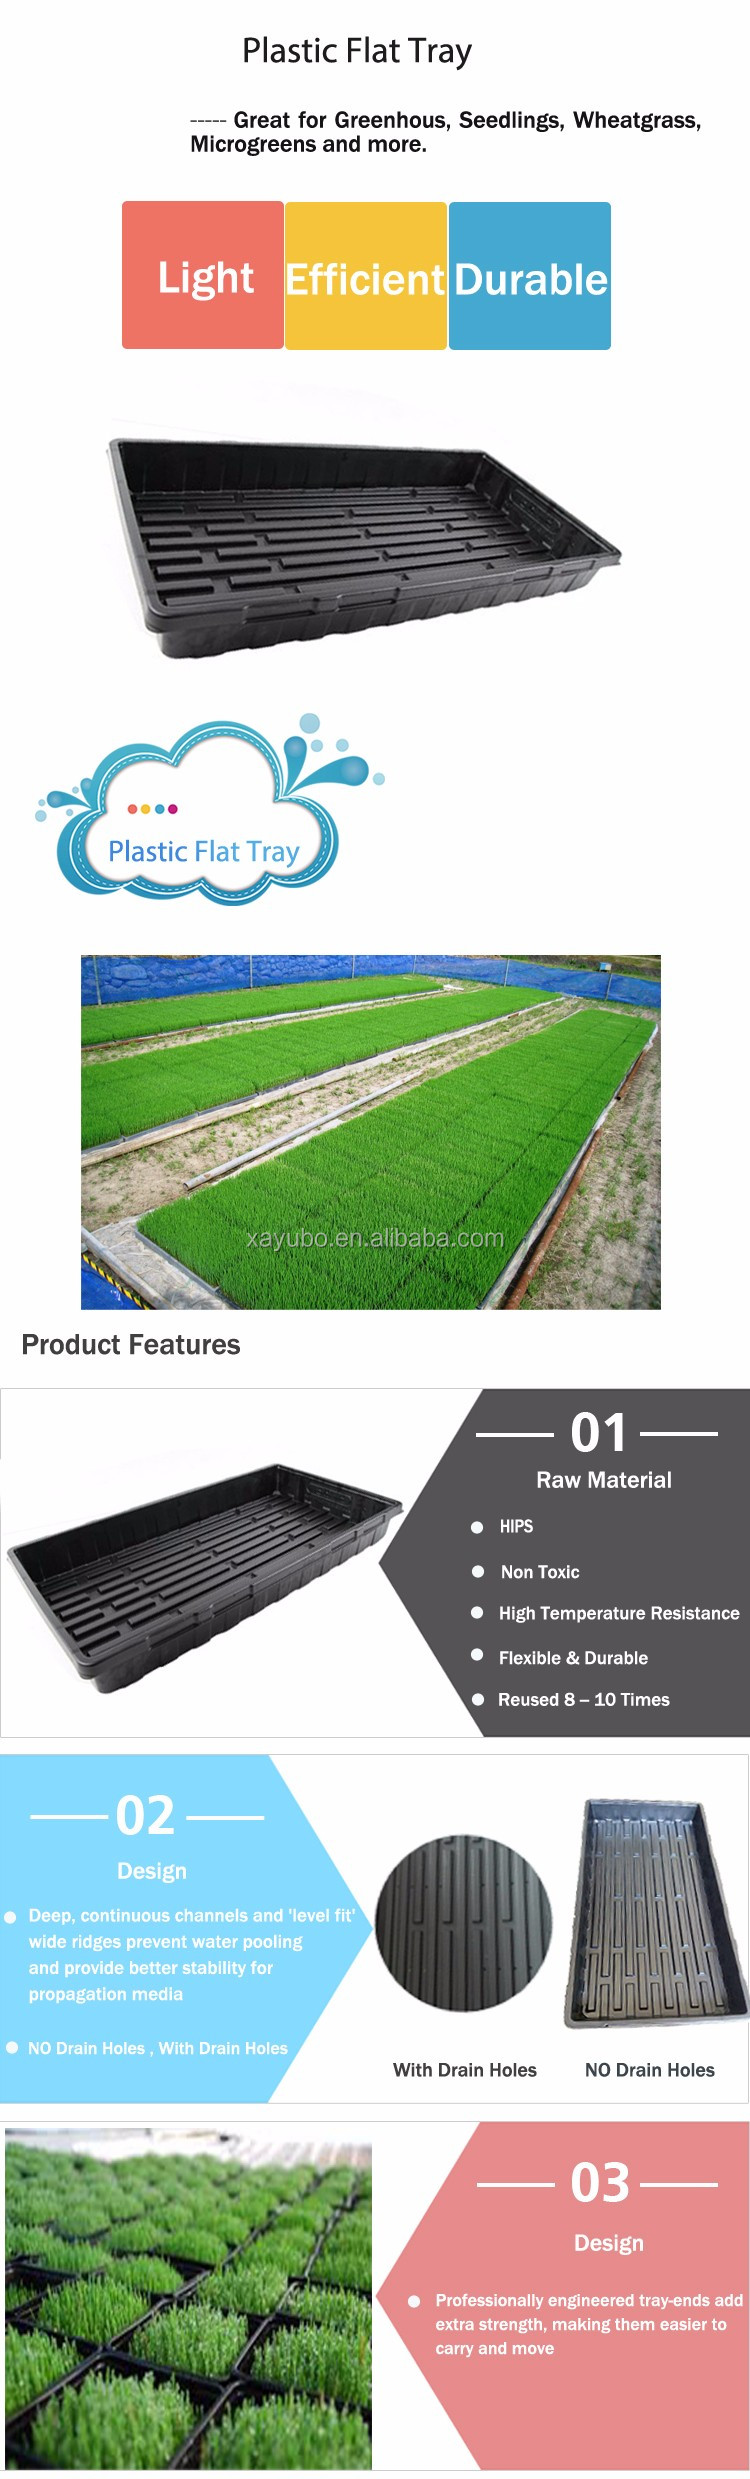 Free Sample Hydroponics Sprouts Vegetable Black Plastic Growing Trays For Sprouts Plants